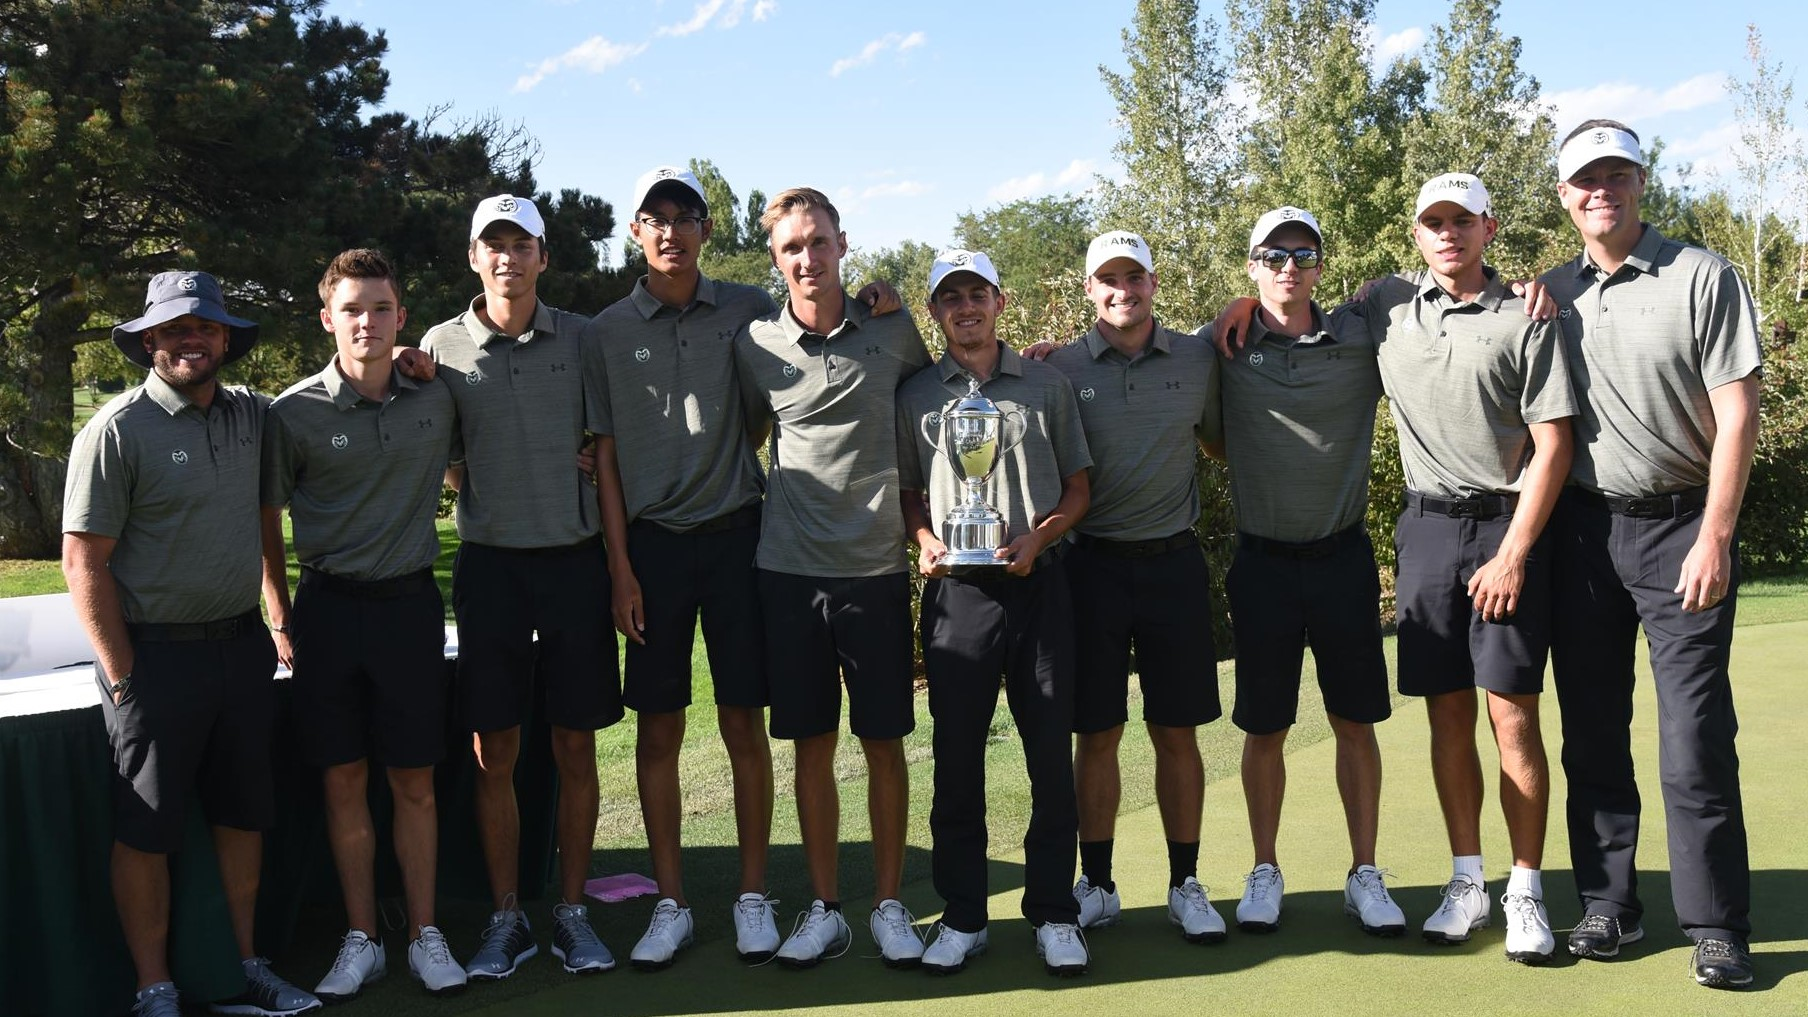 Men s golf wins ram masters invitational presented by pedersen toyota in record fashion